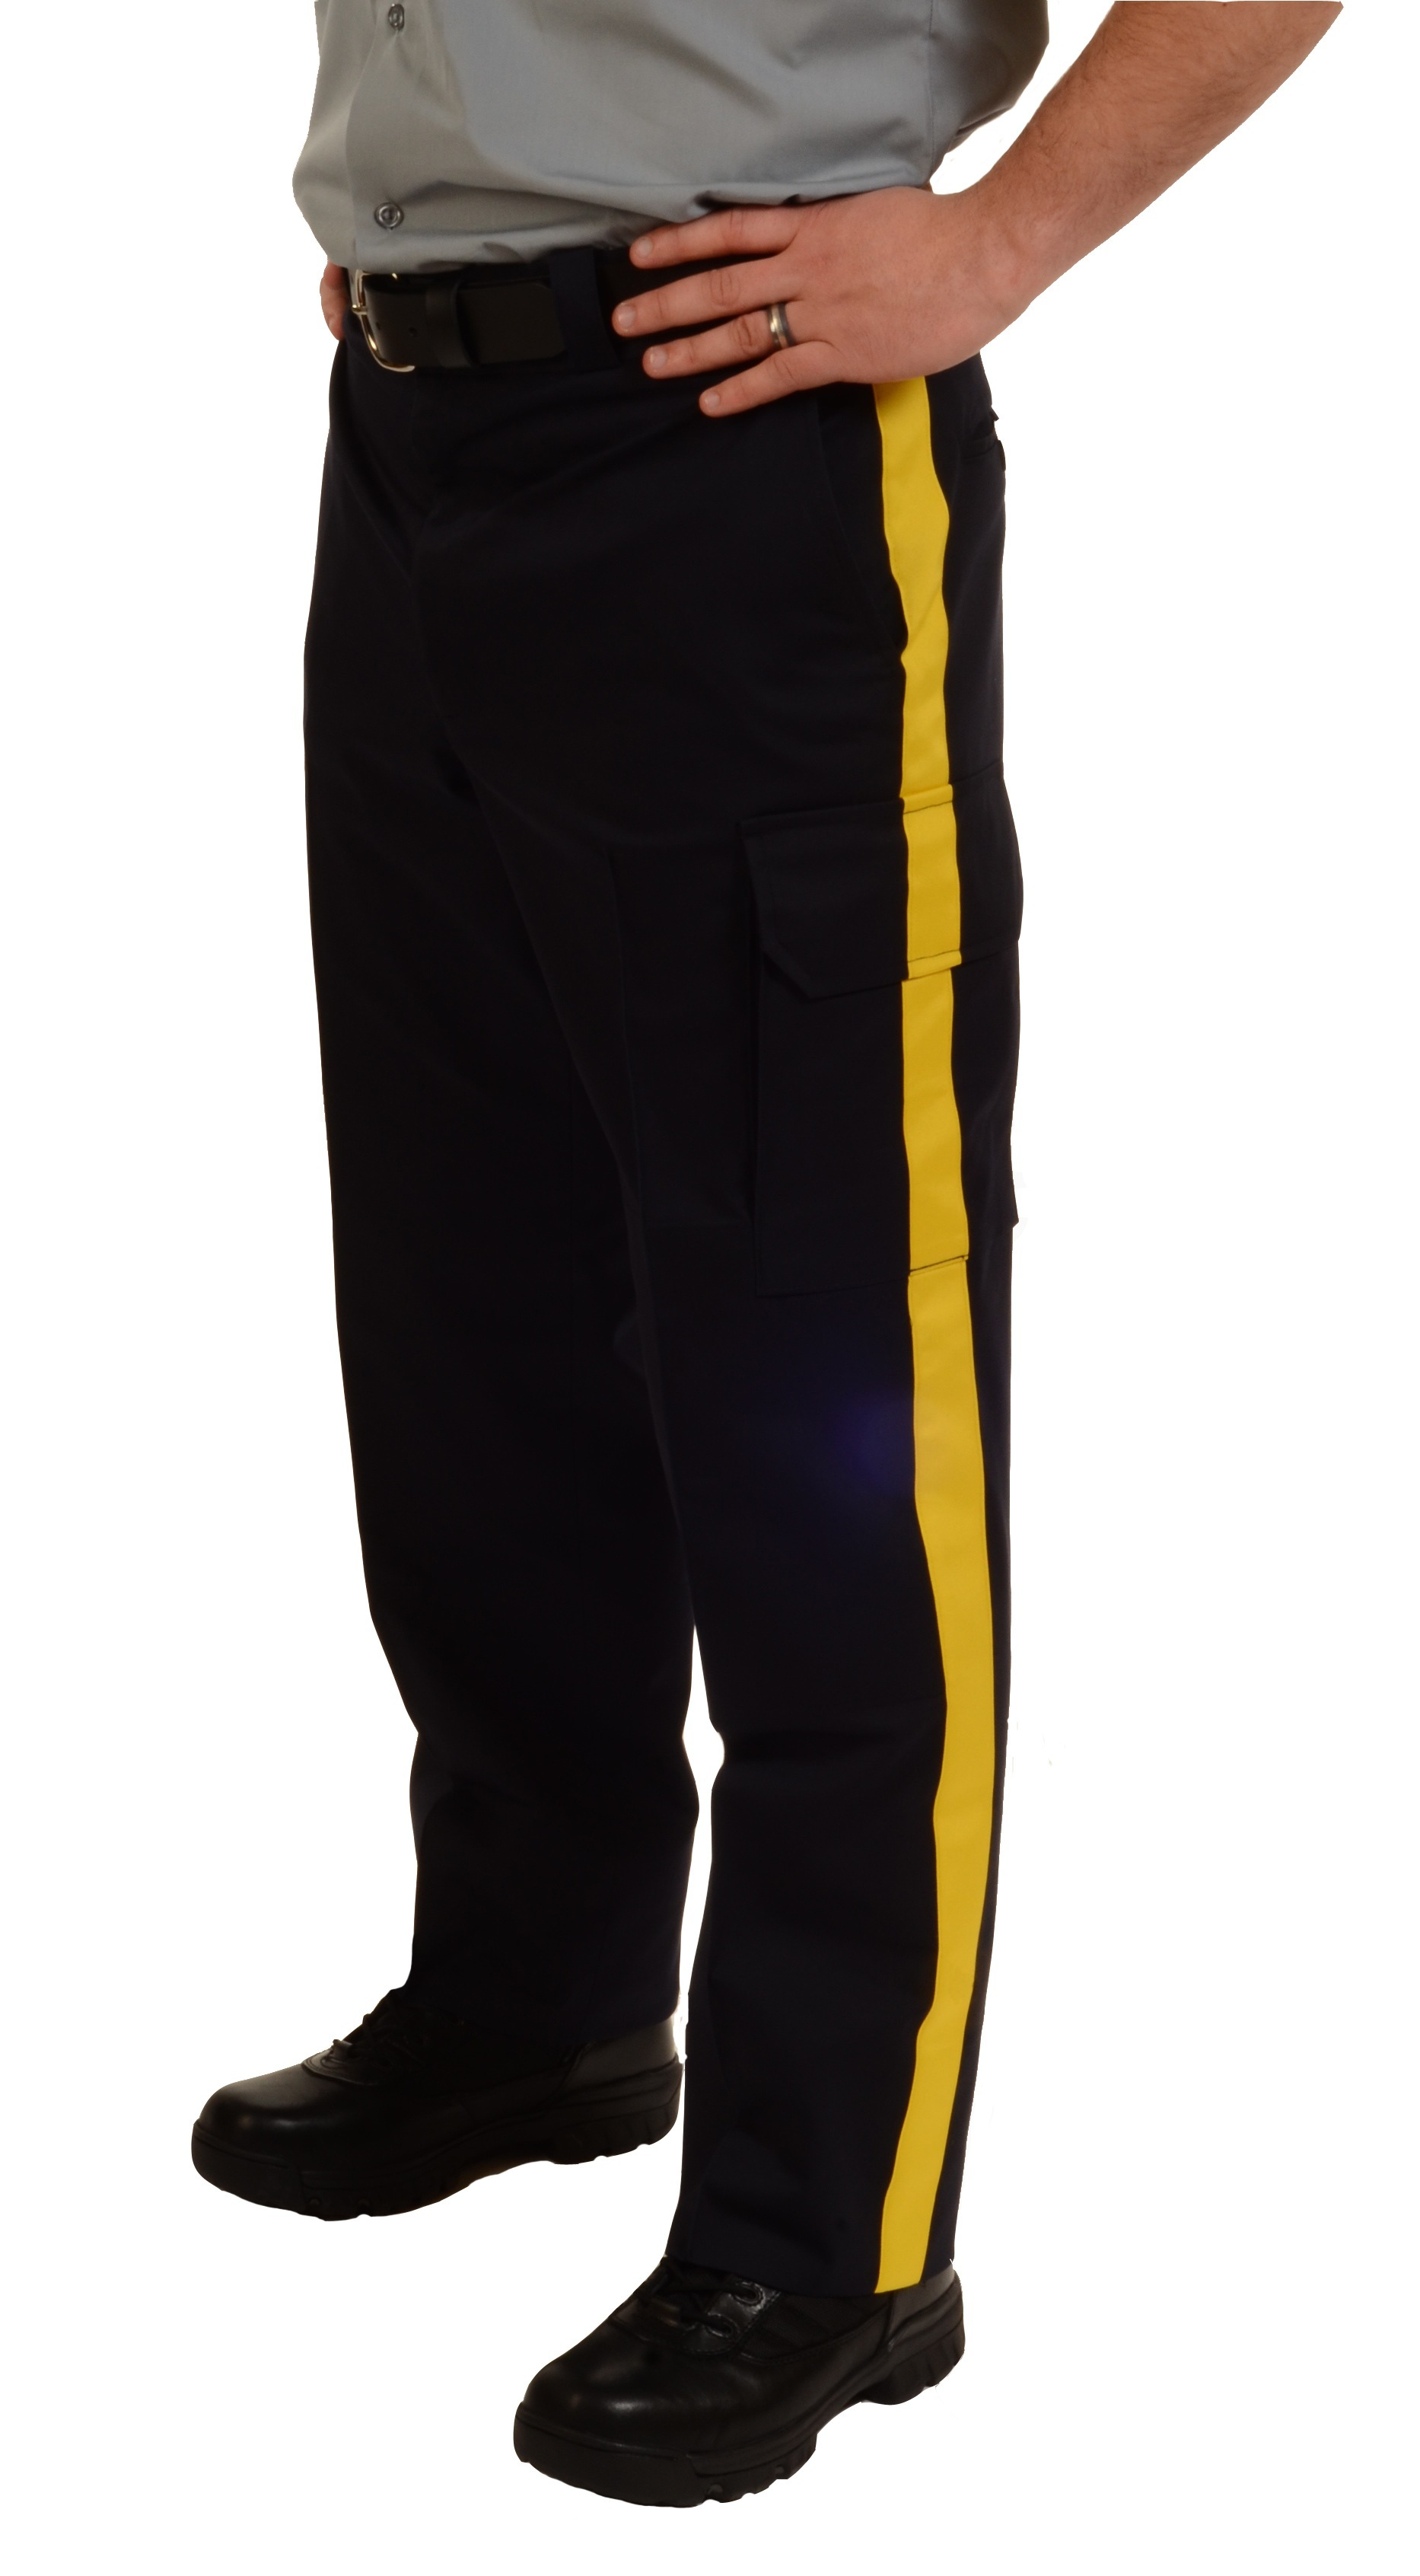 Striped Duty Flex Waist Pants with Cargo Pockets-Derks Uniforms